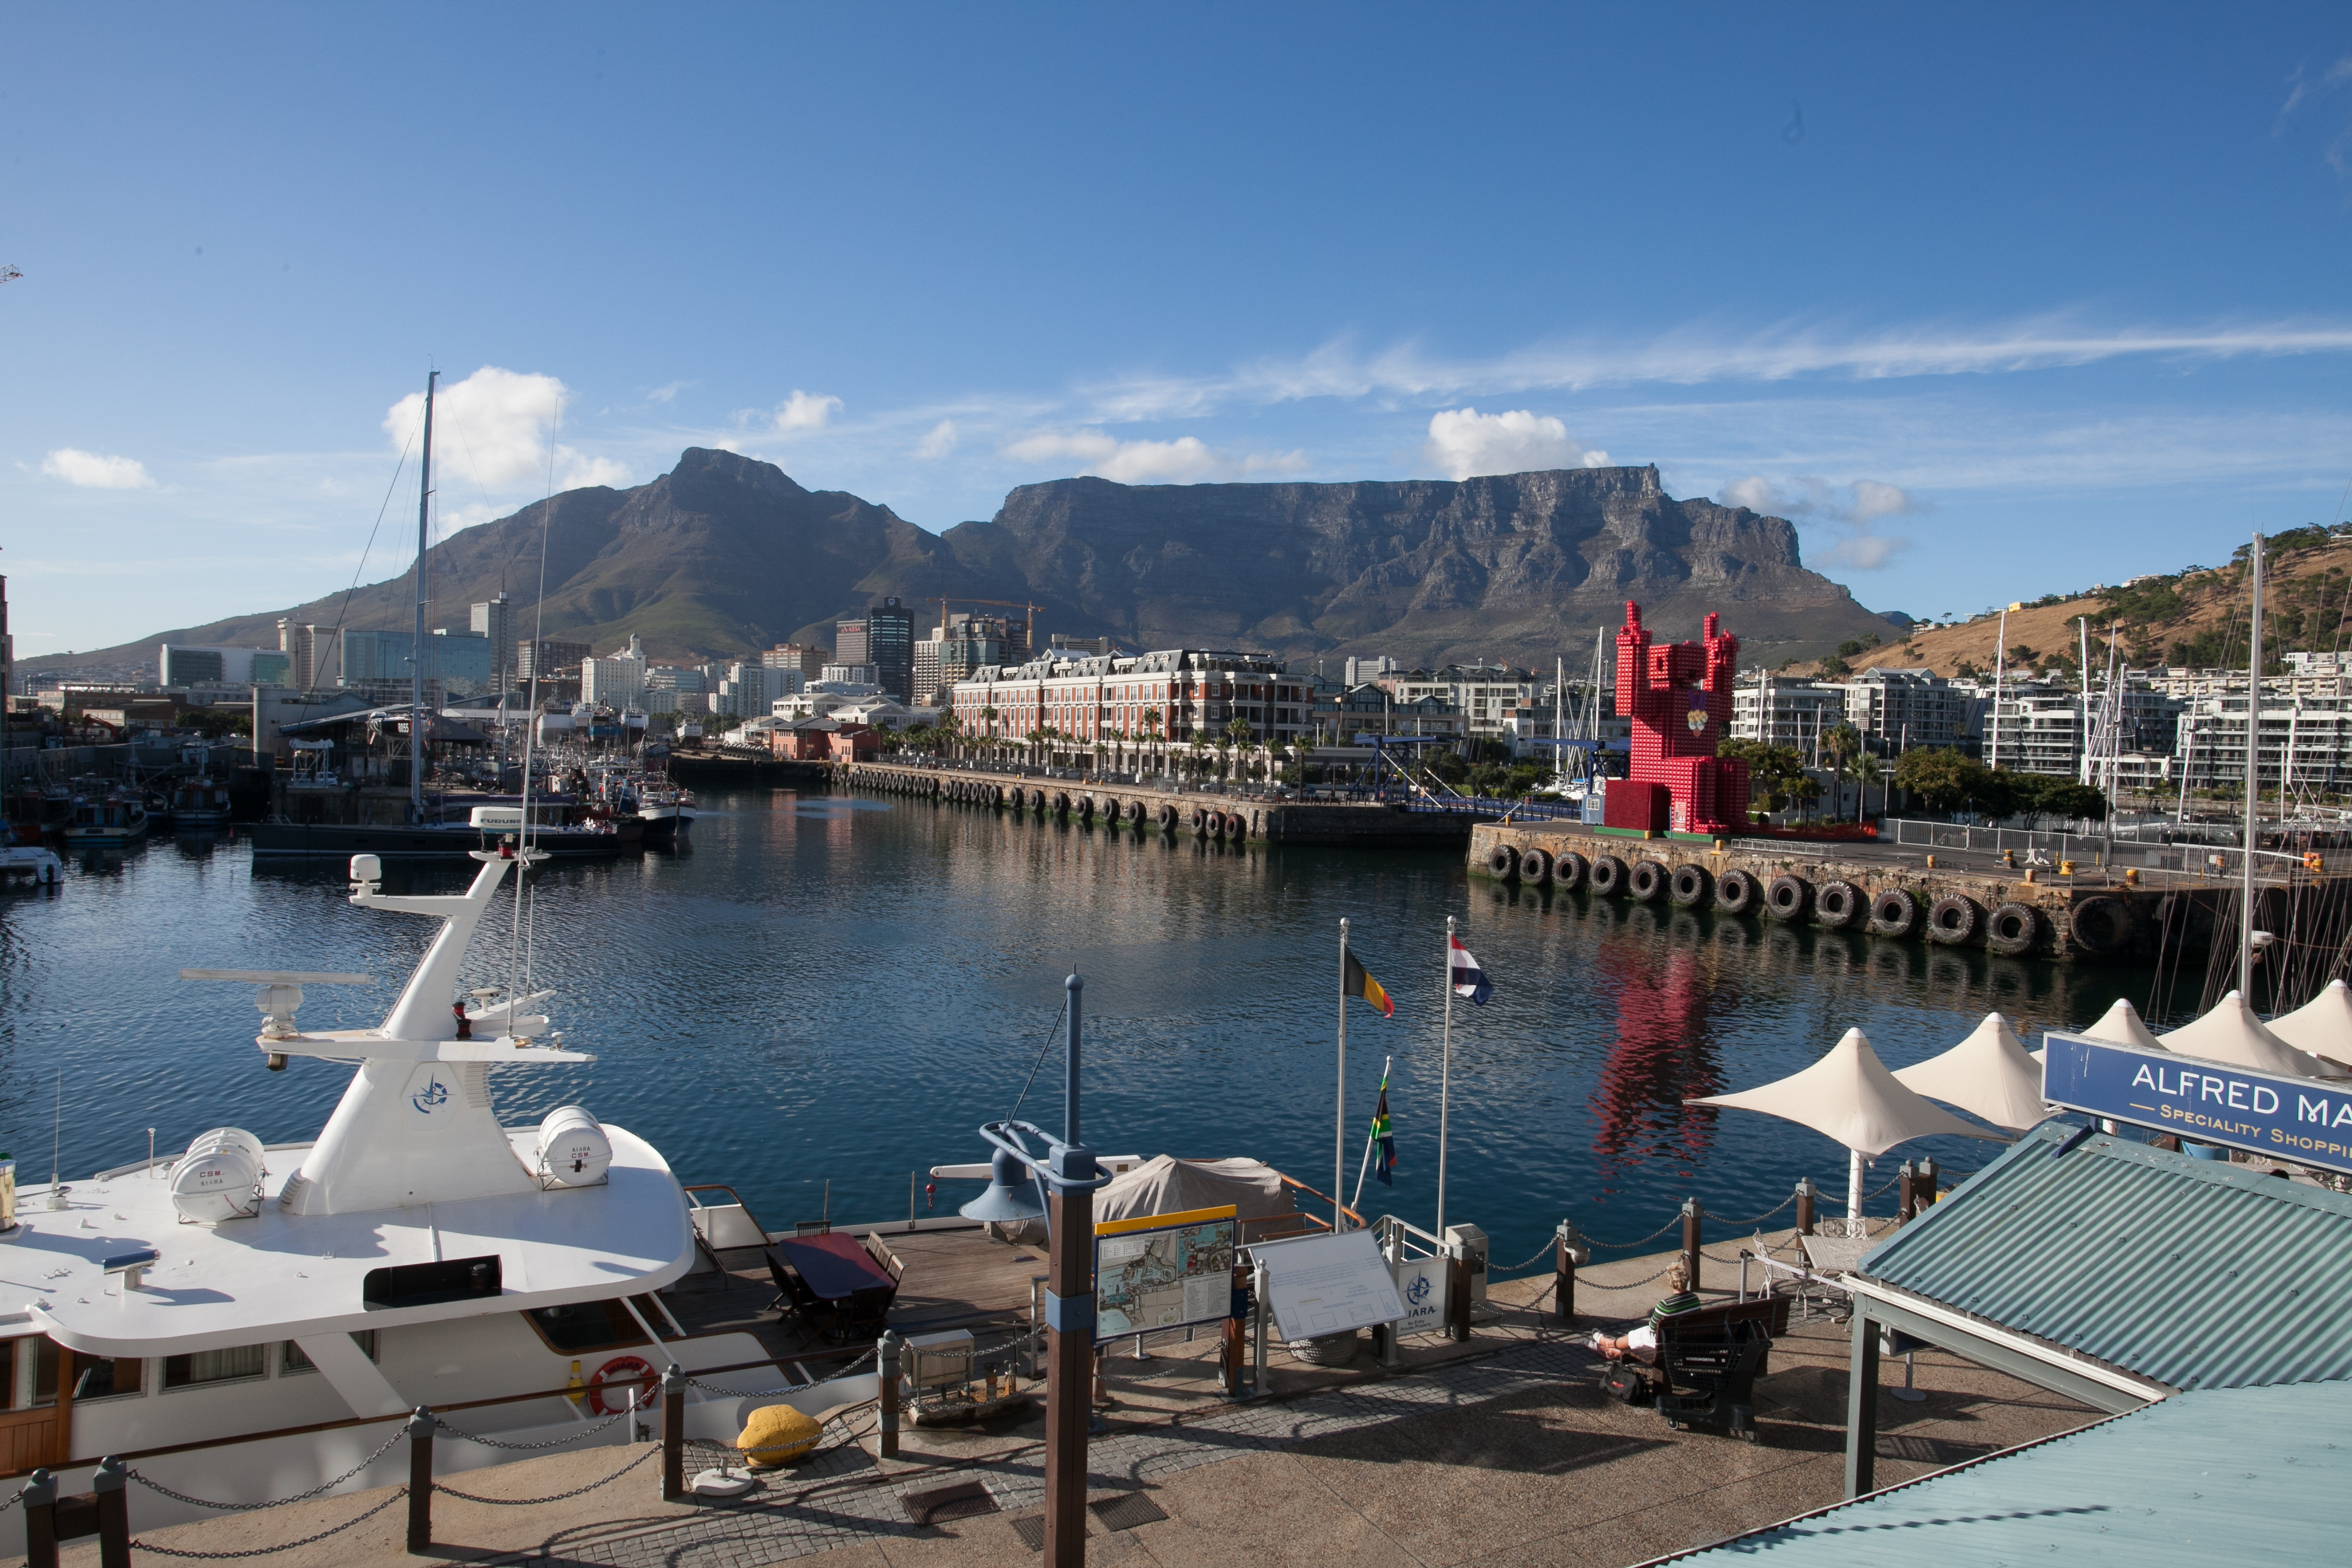 Victoria and Alfred Hotel South Africa View